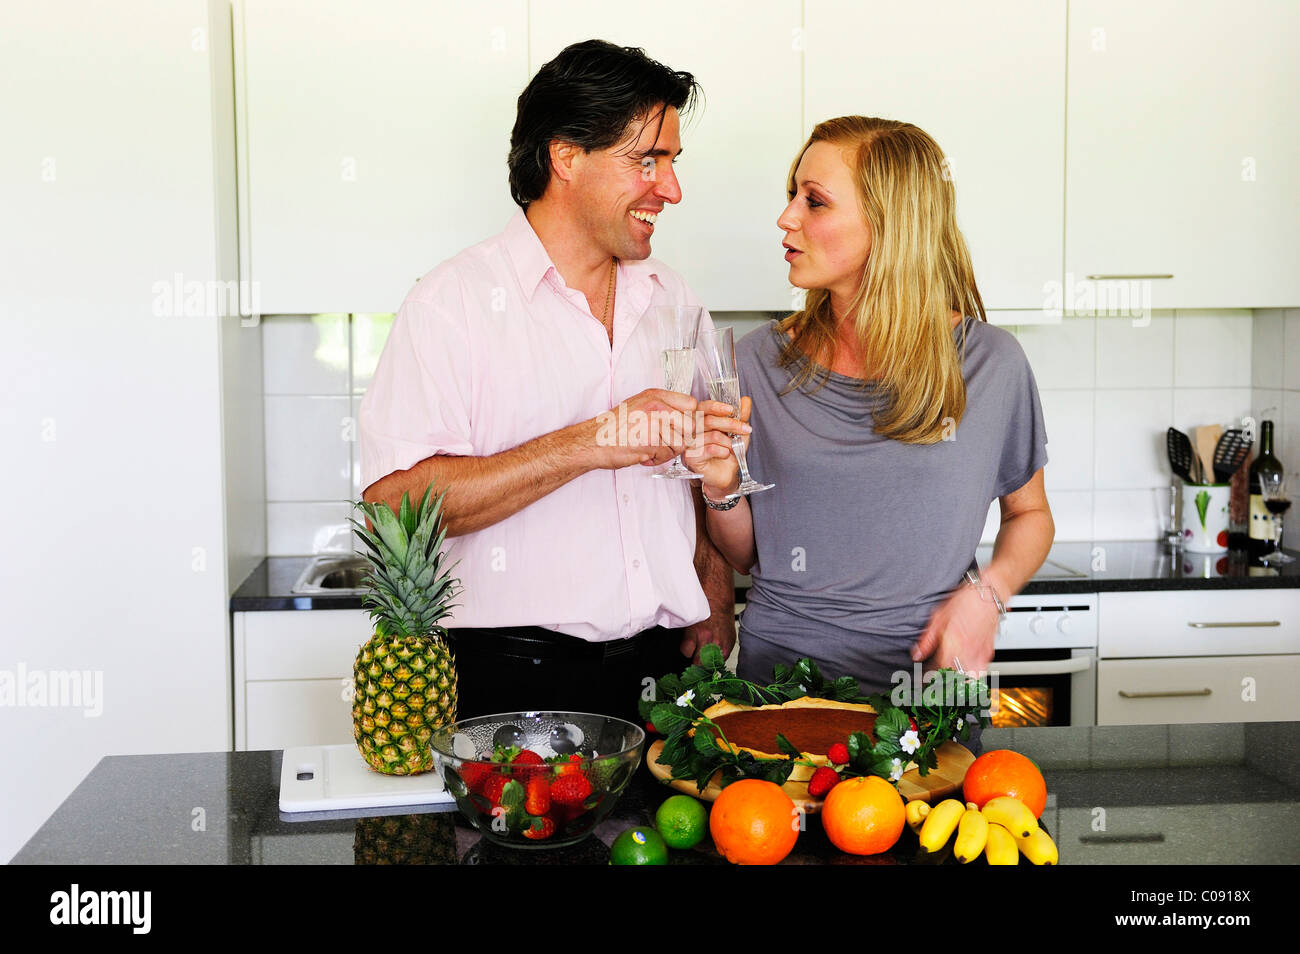 Young couple clinking glasses, dessert and fruit in the foreground Stock Photo